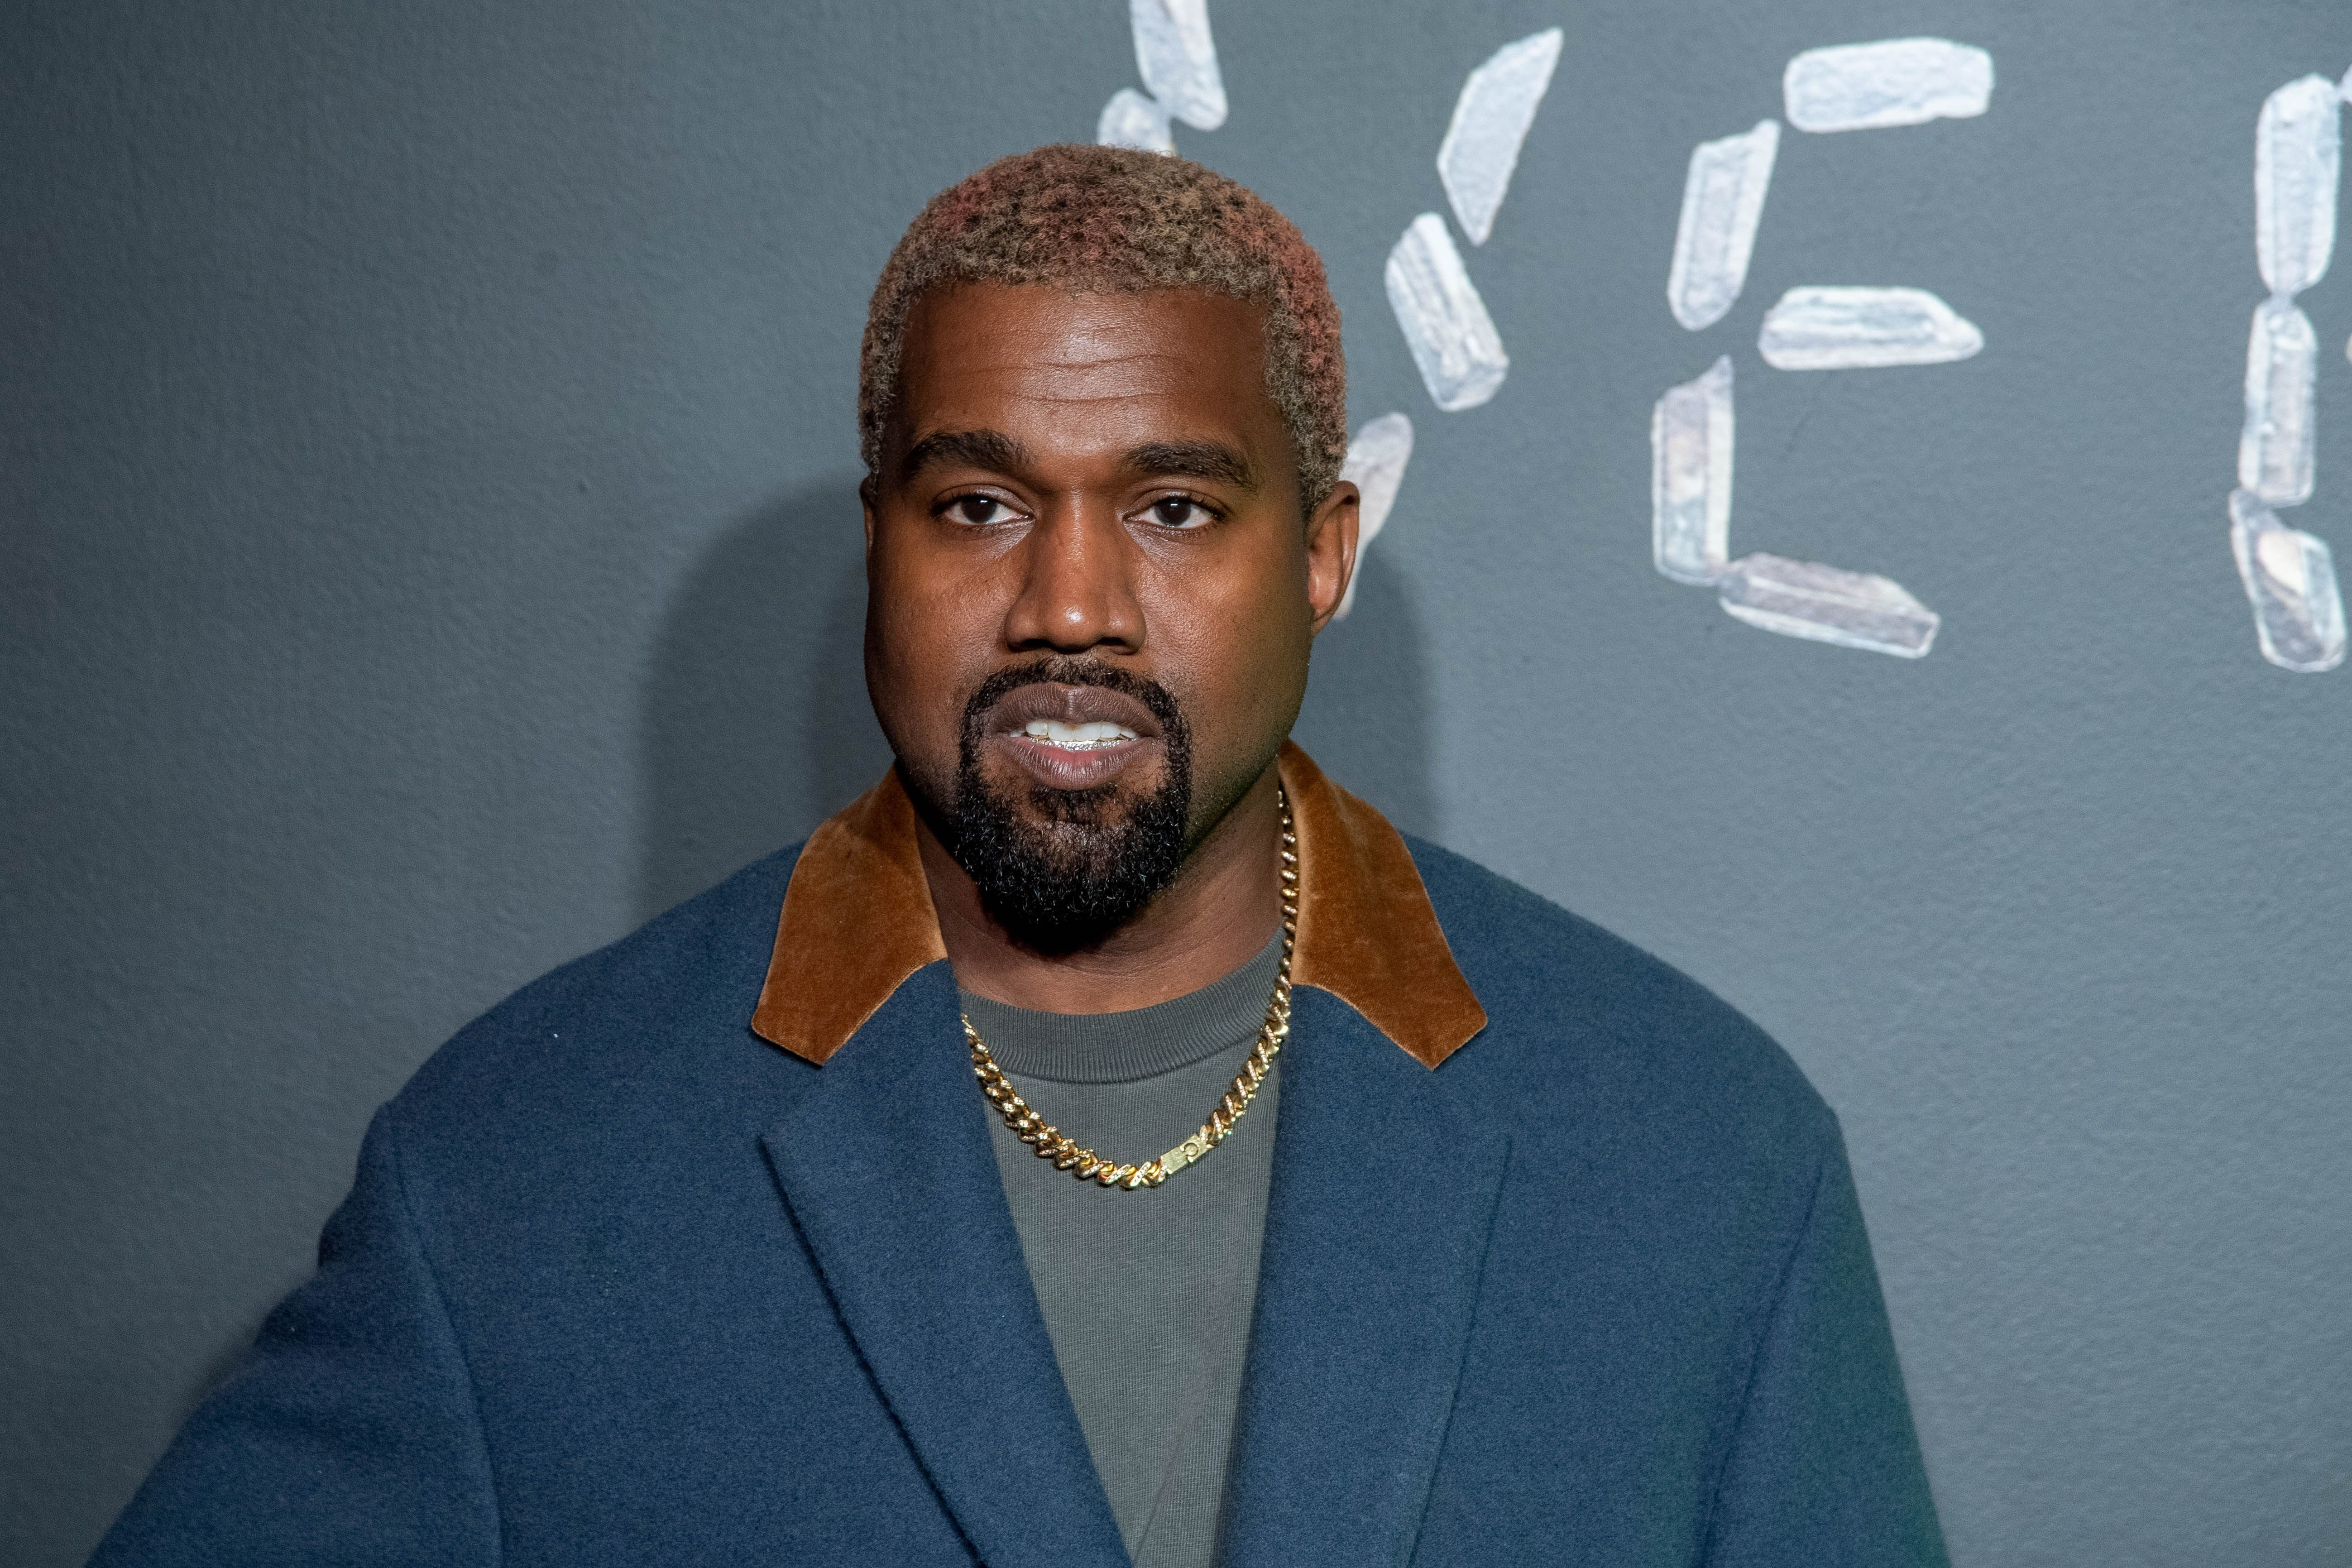 Music Producer and rapper Kanye West attending the Versace fall 2019 fashion show in New York City | Photo: Getty Images